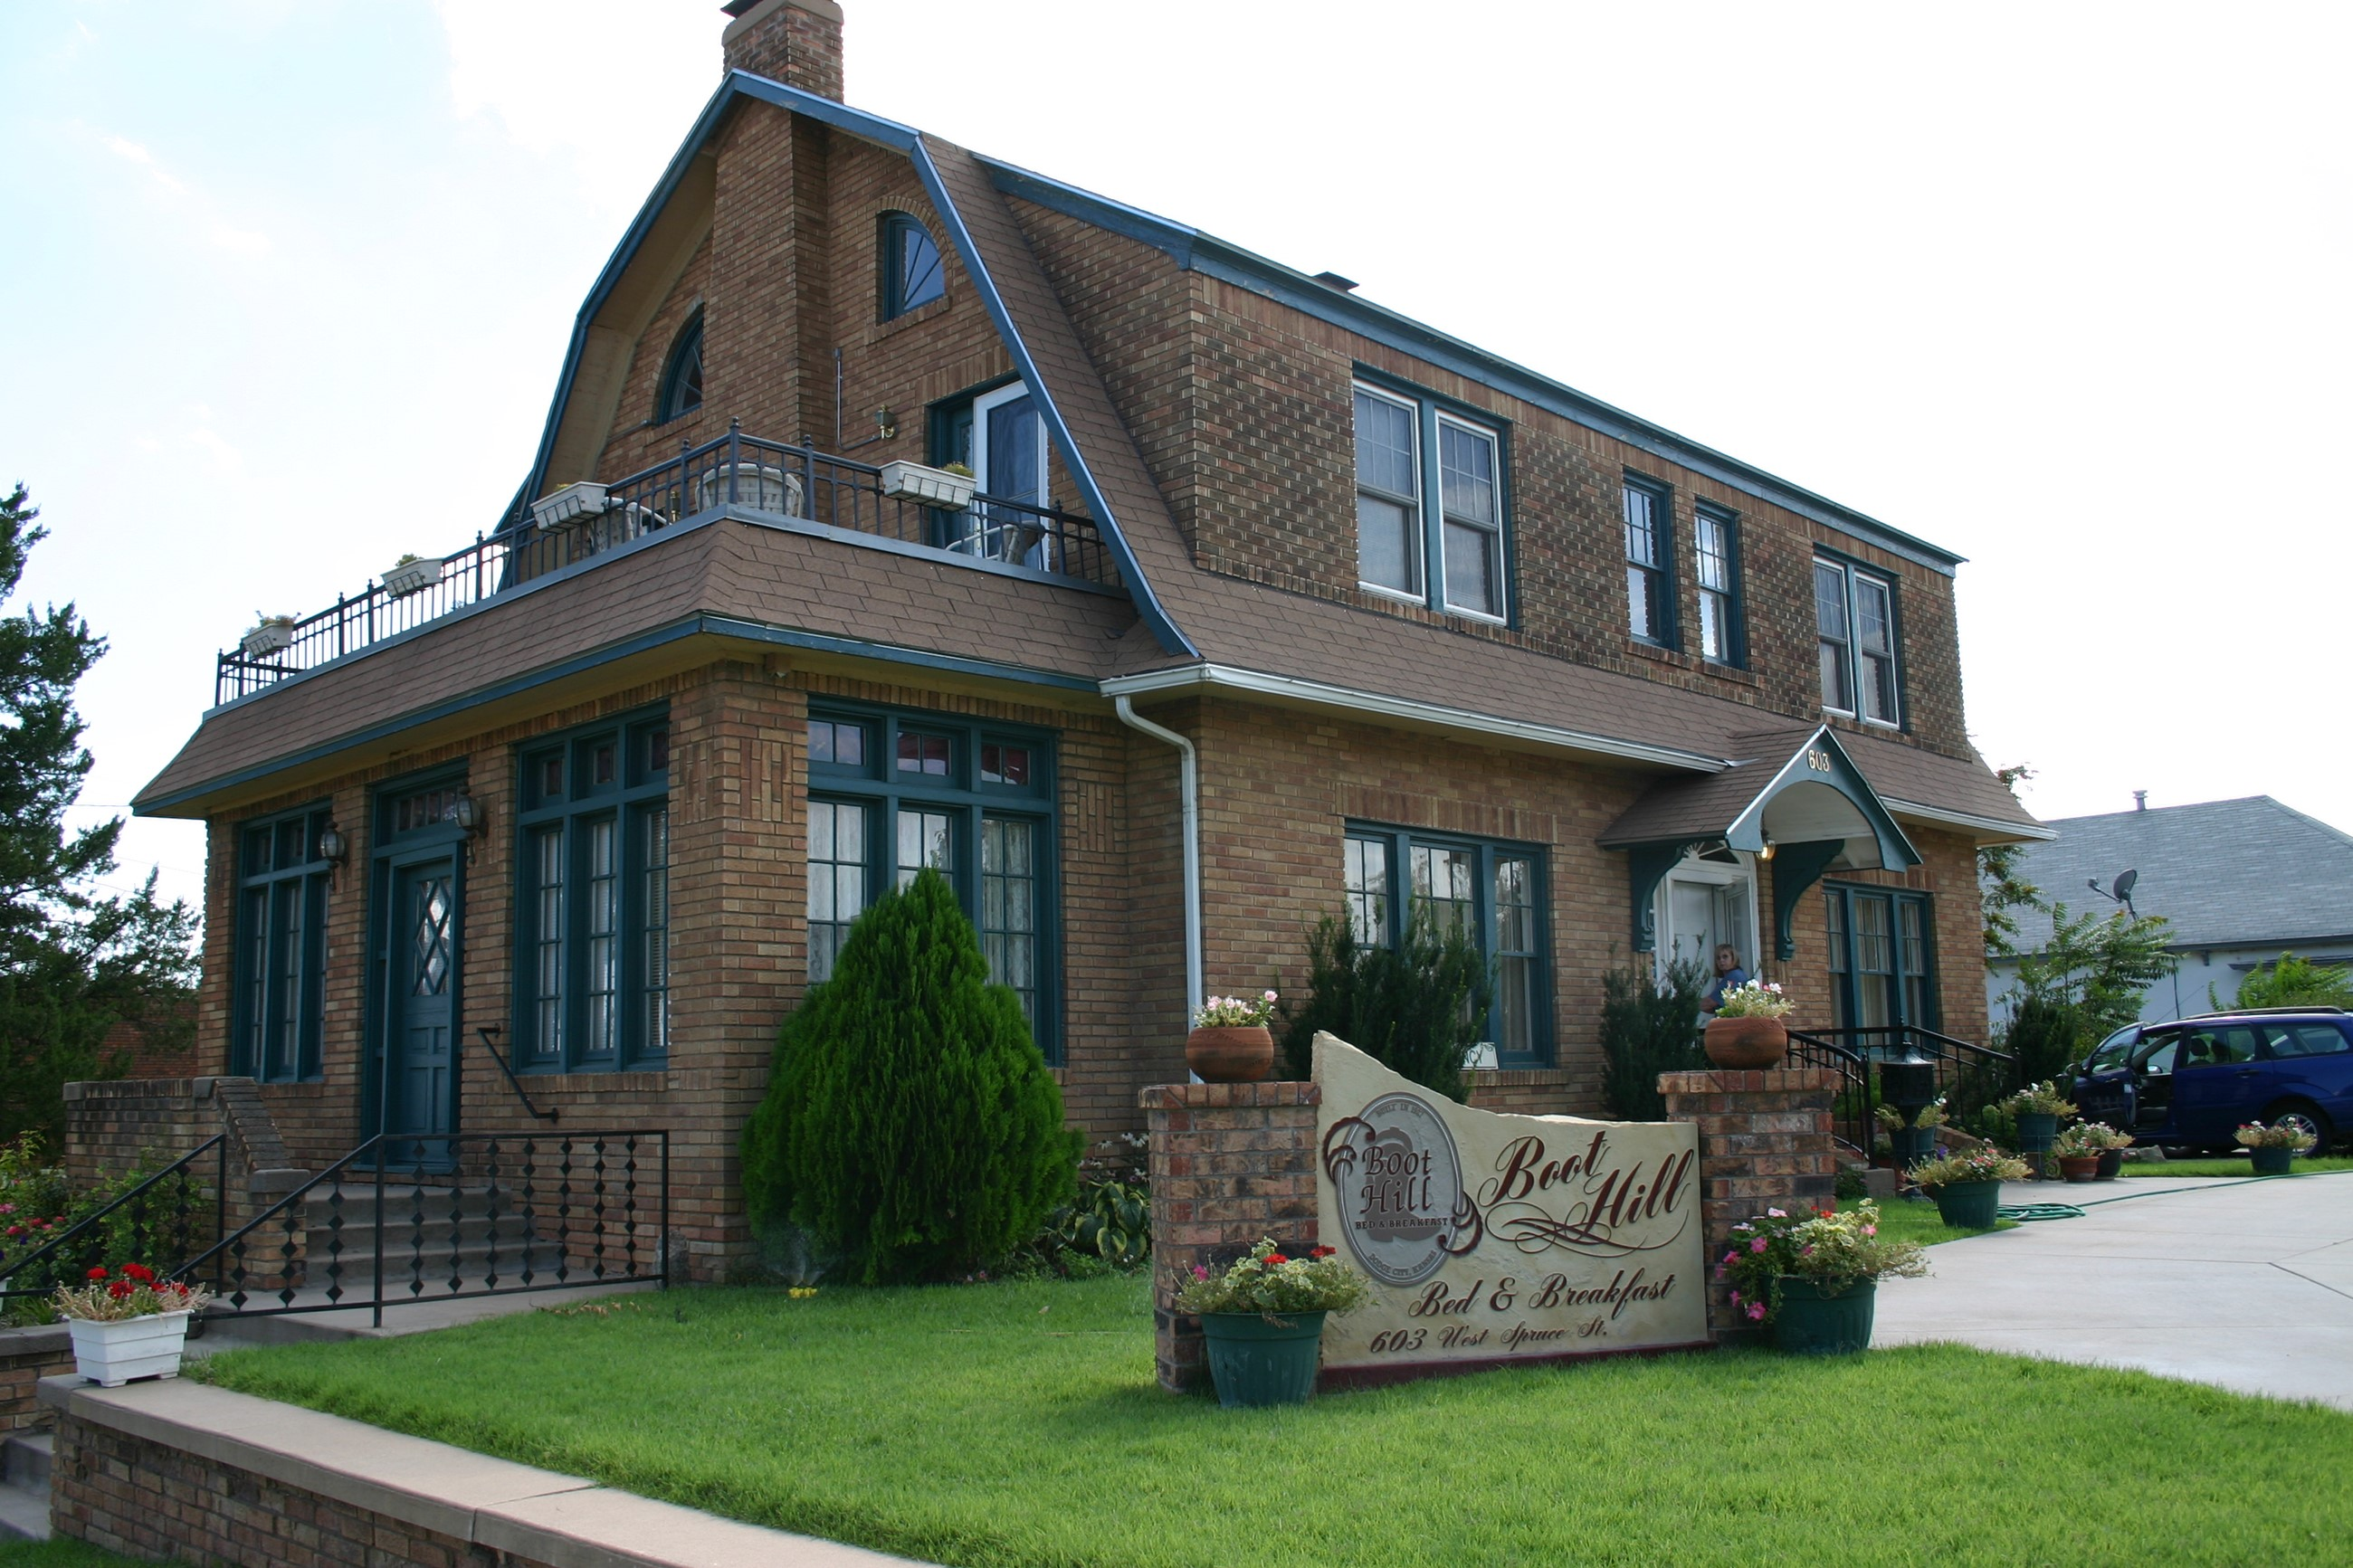 Boot Hill Bed & Breakfast in Dodge City, Kansas